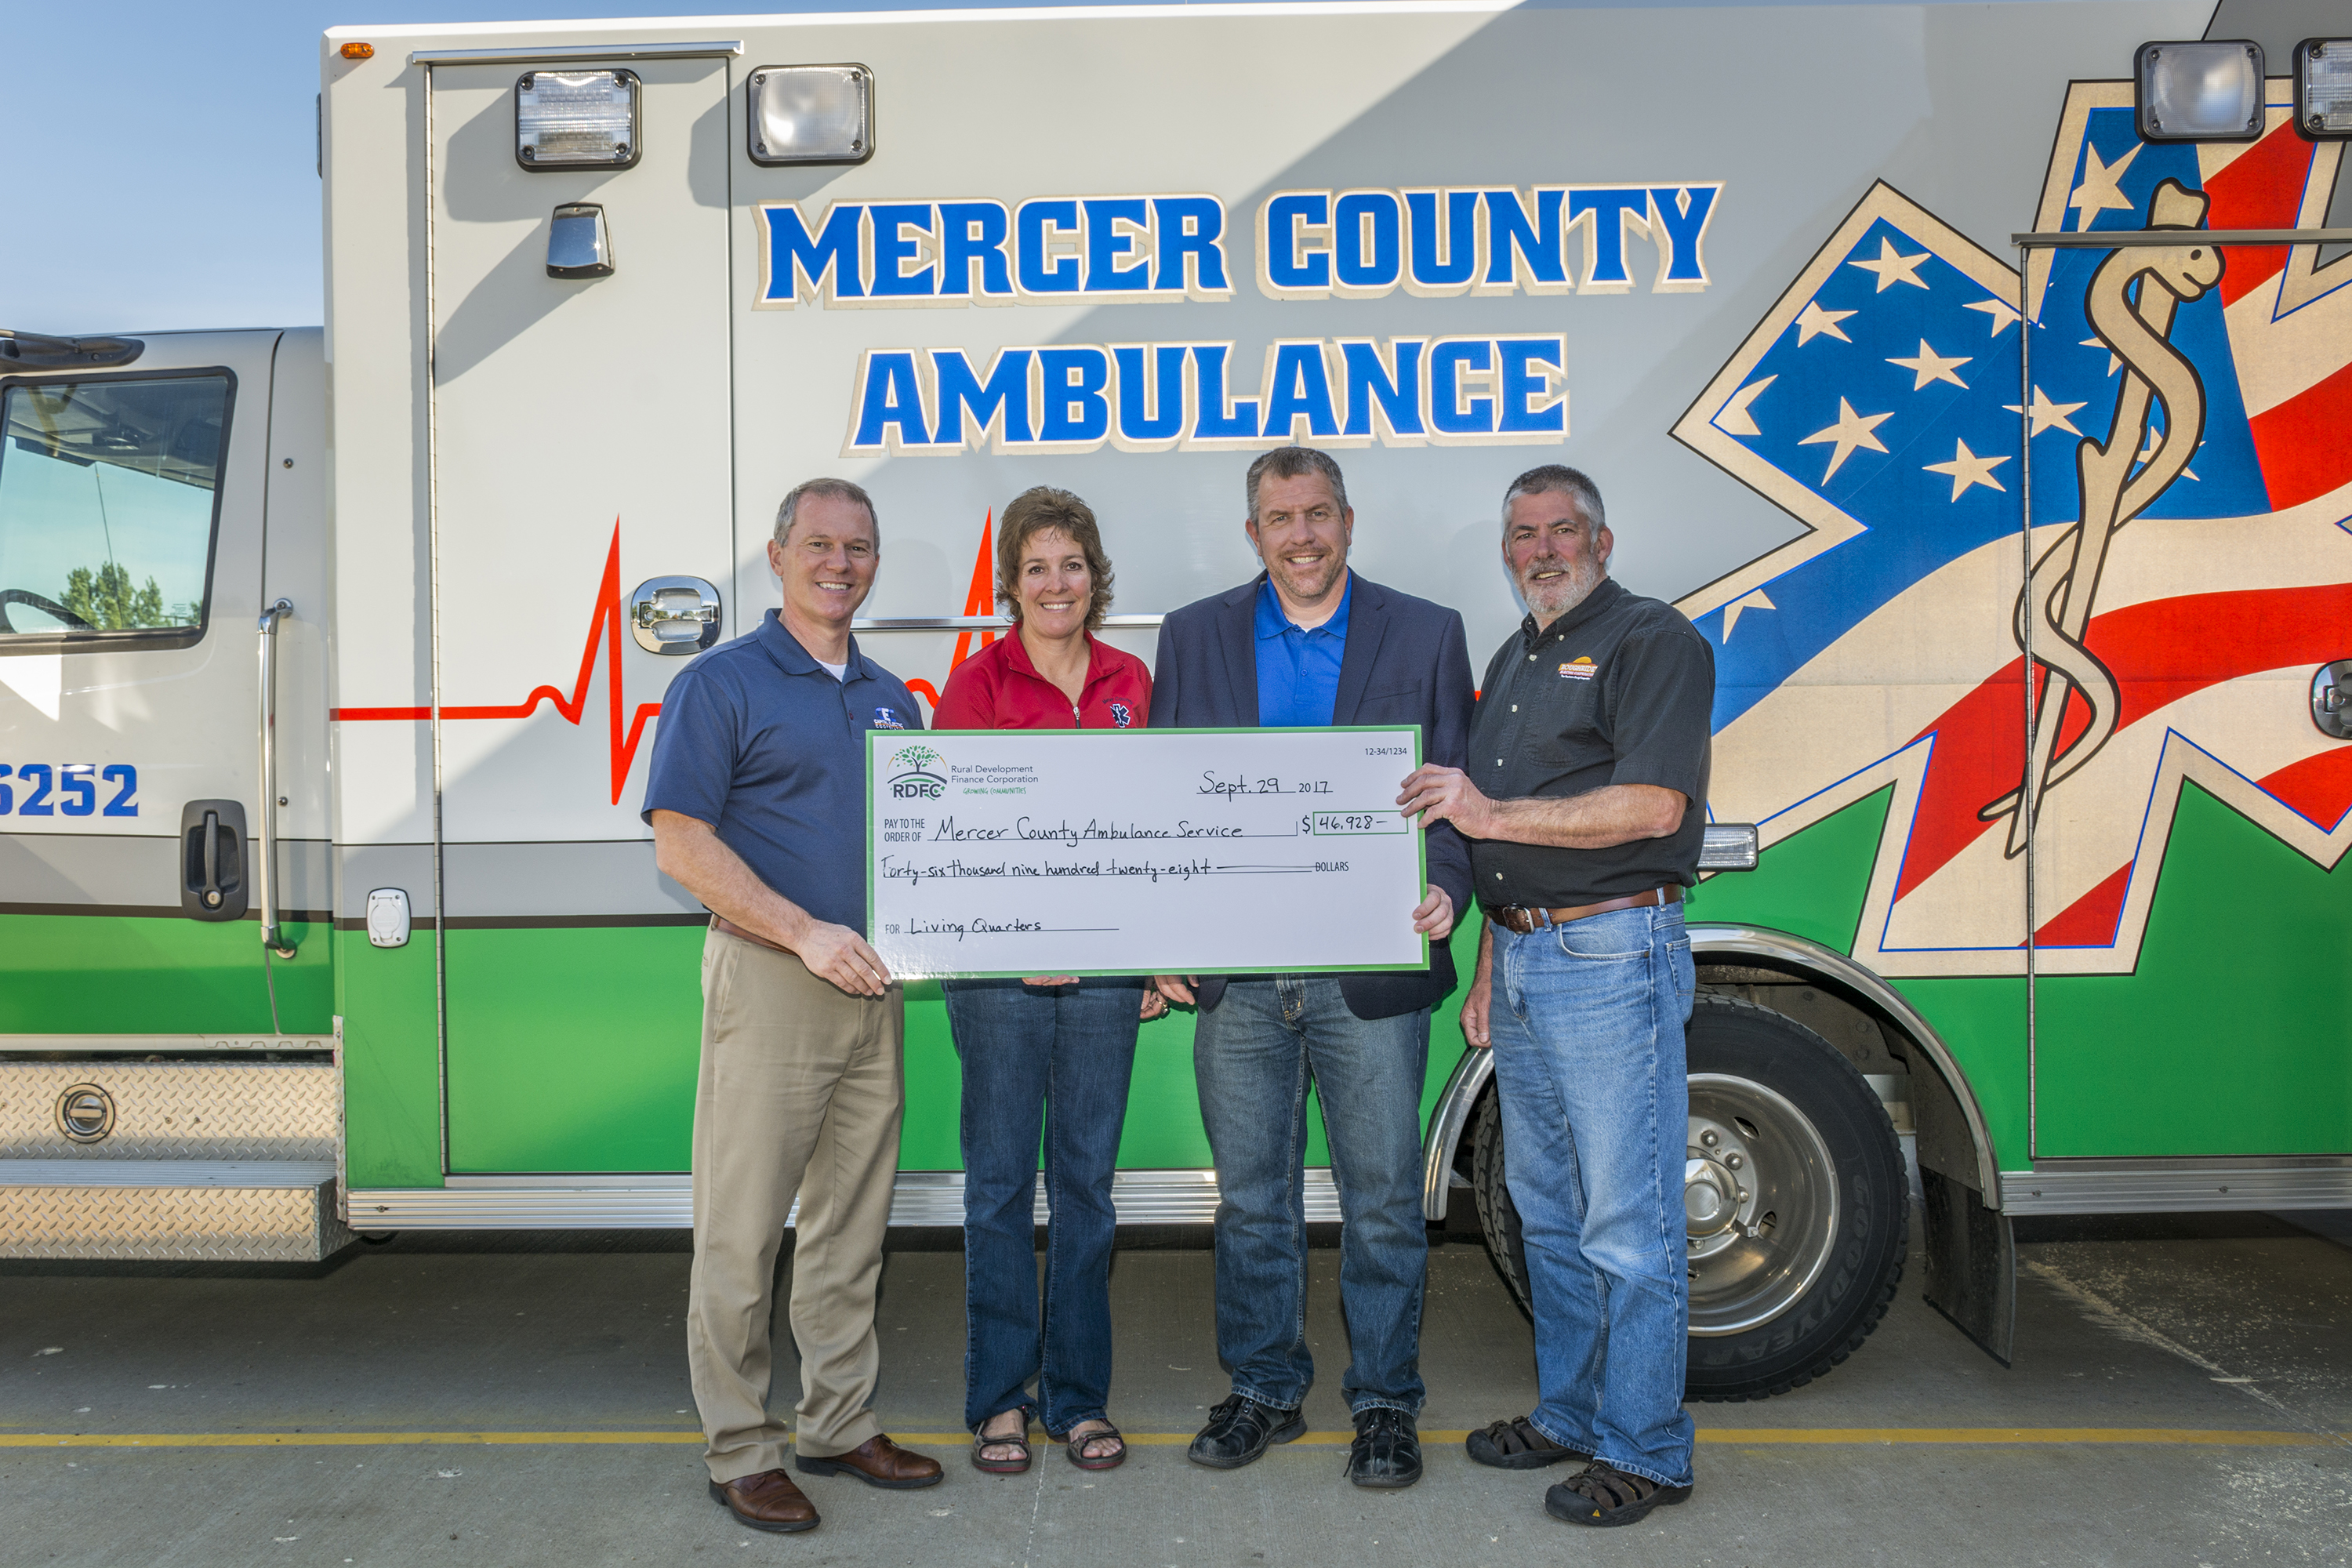 The Mercer County Ambulance crew receives a check from RDFC